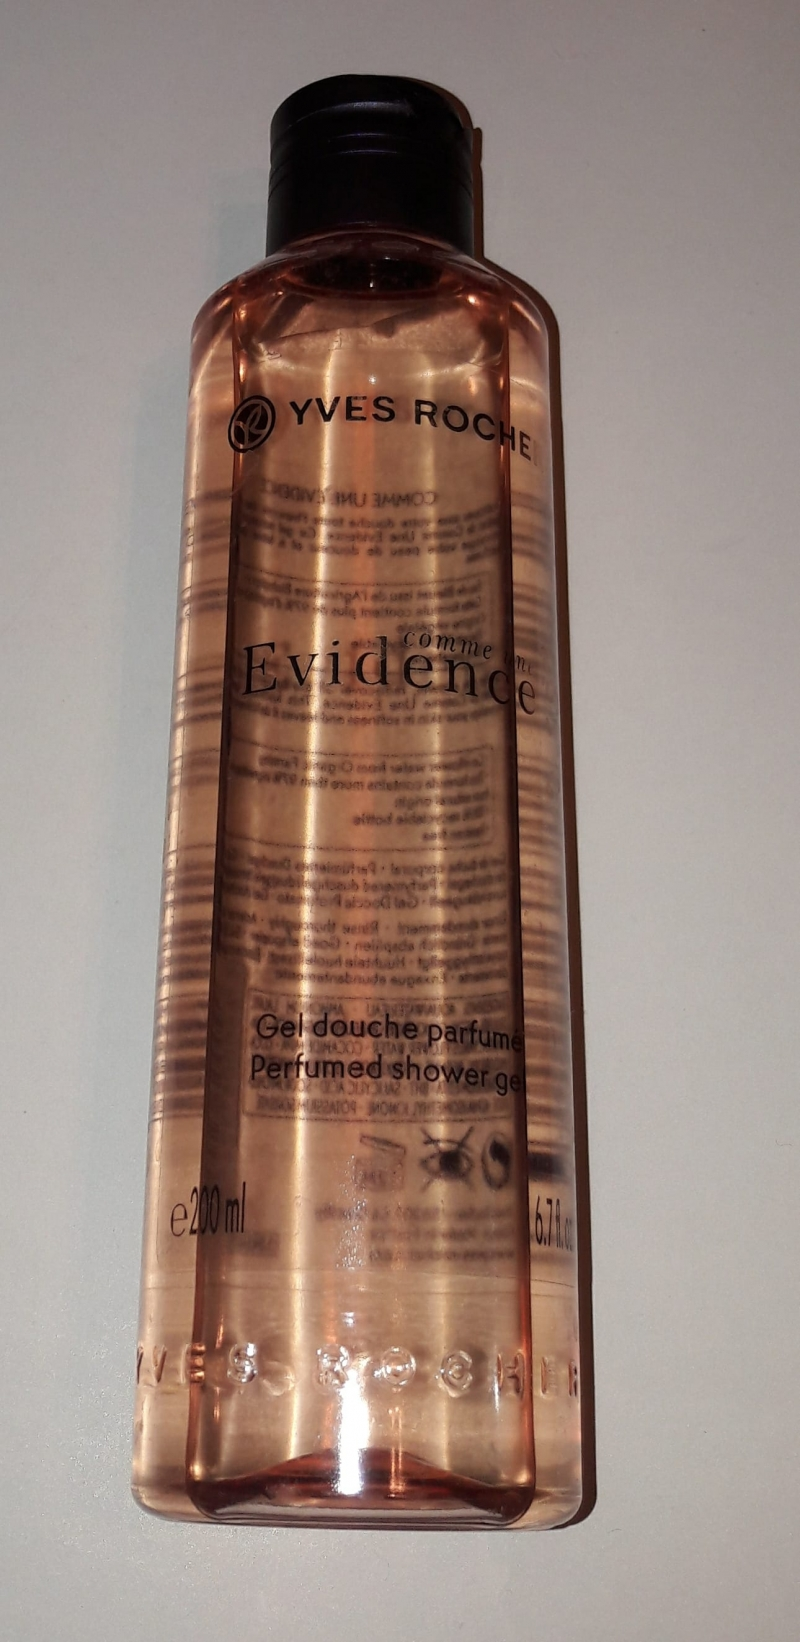 Swatch Comme Une Evidence - Gel Douche Parfumé, Yves Rocher